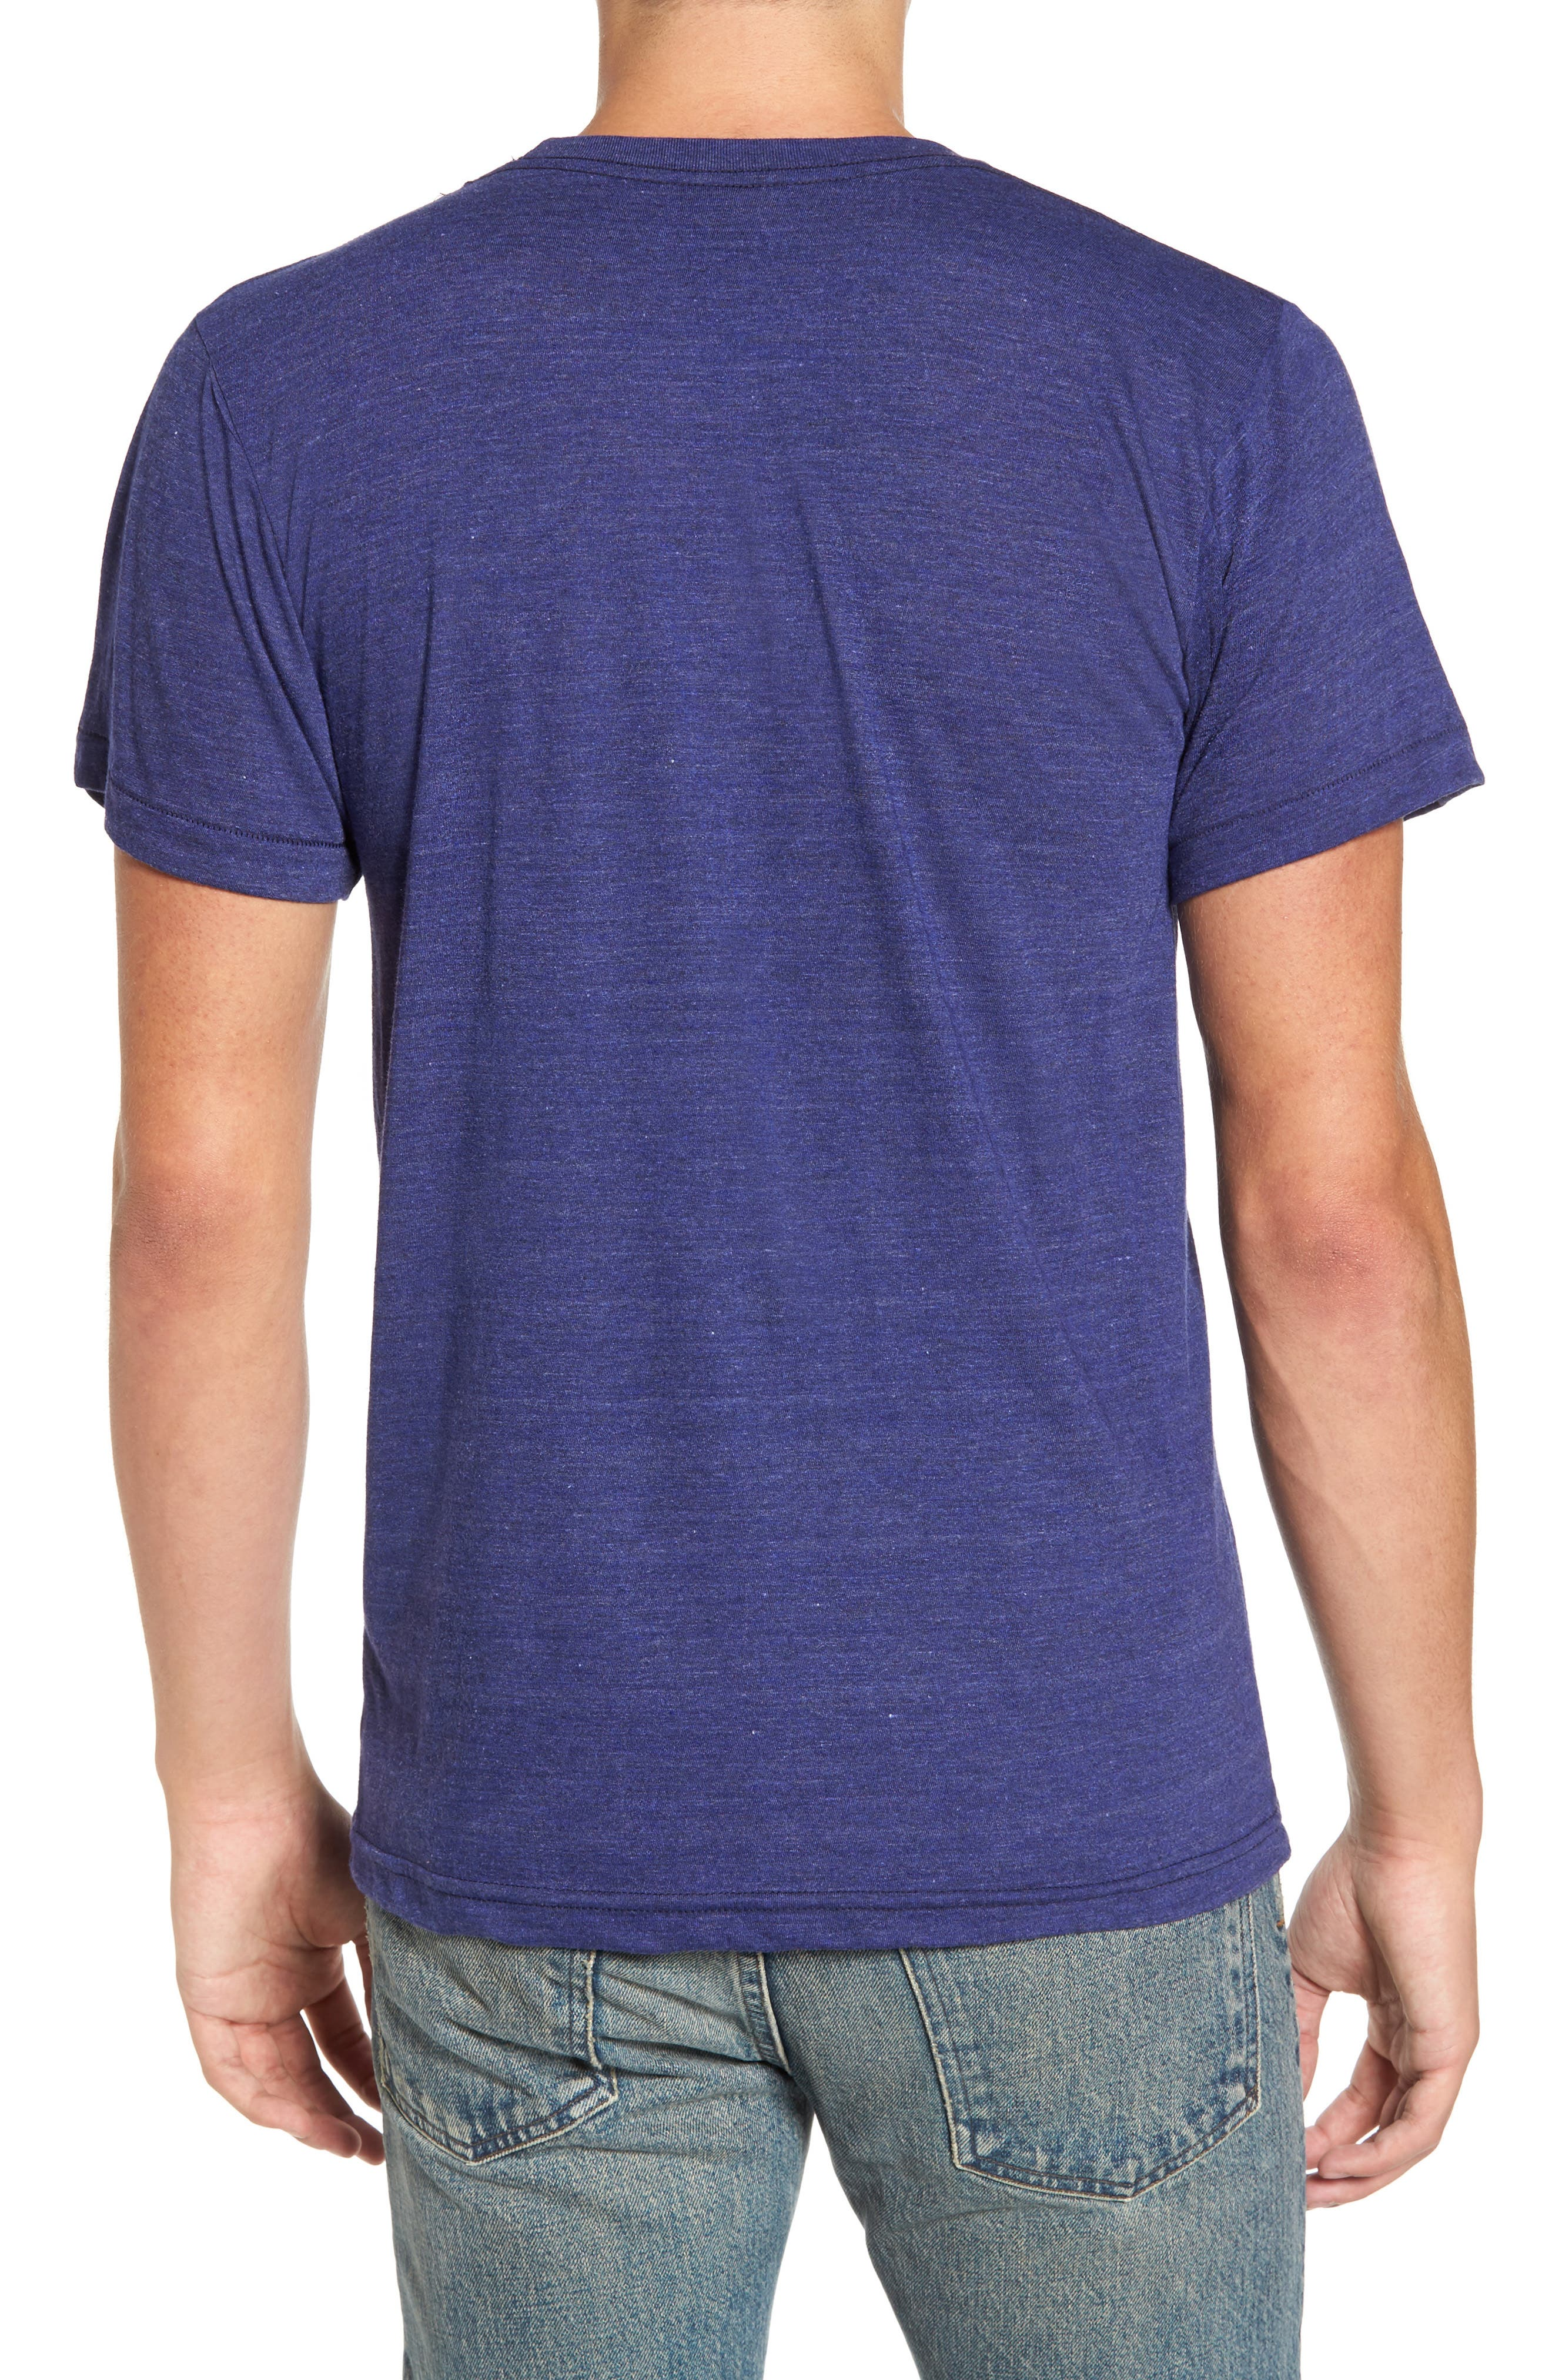 Alternate Image 2  - Casual Industrees Johnny Tree Embroidered T-Shirt